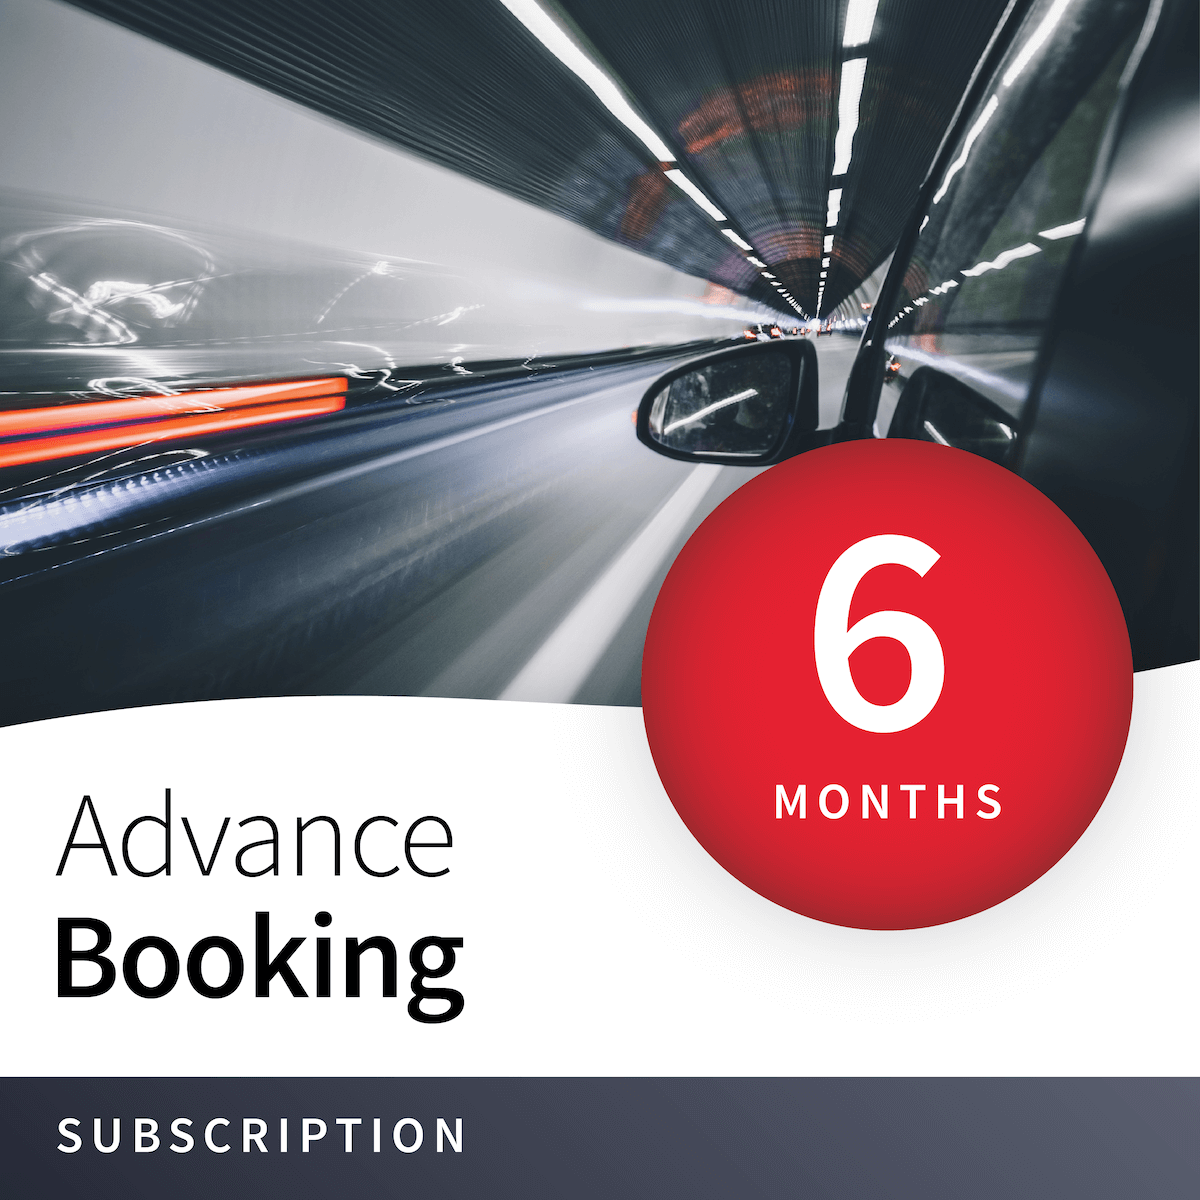 Priority Advance Booking - 6 Months 1